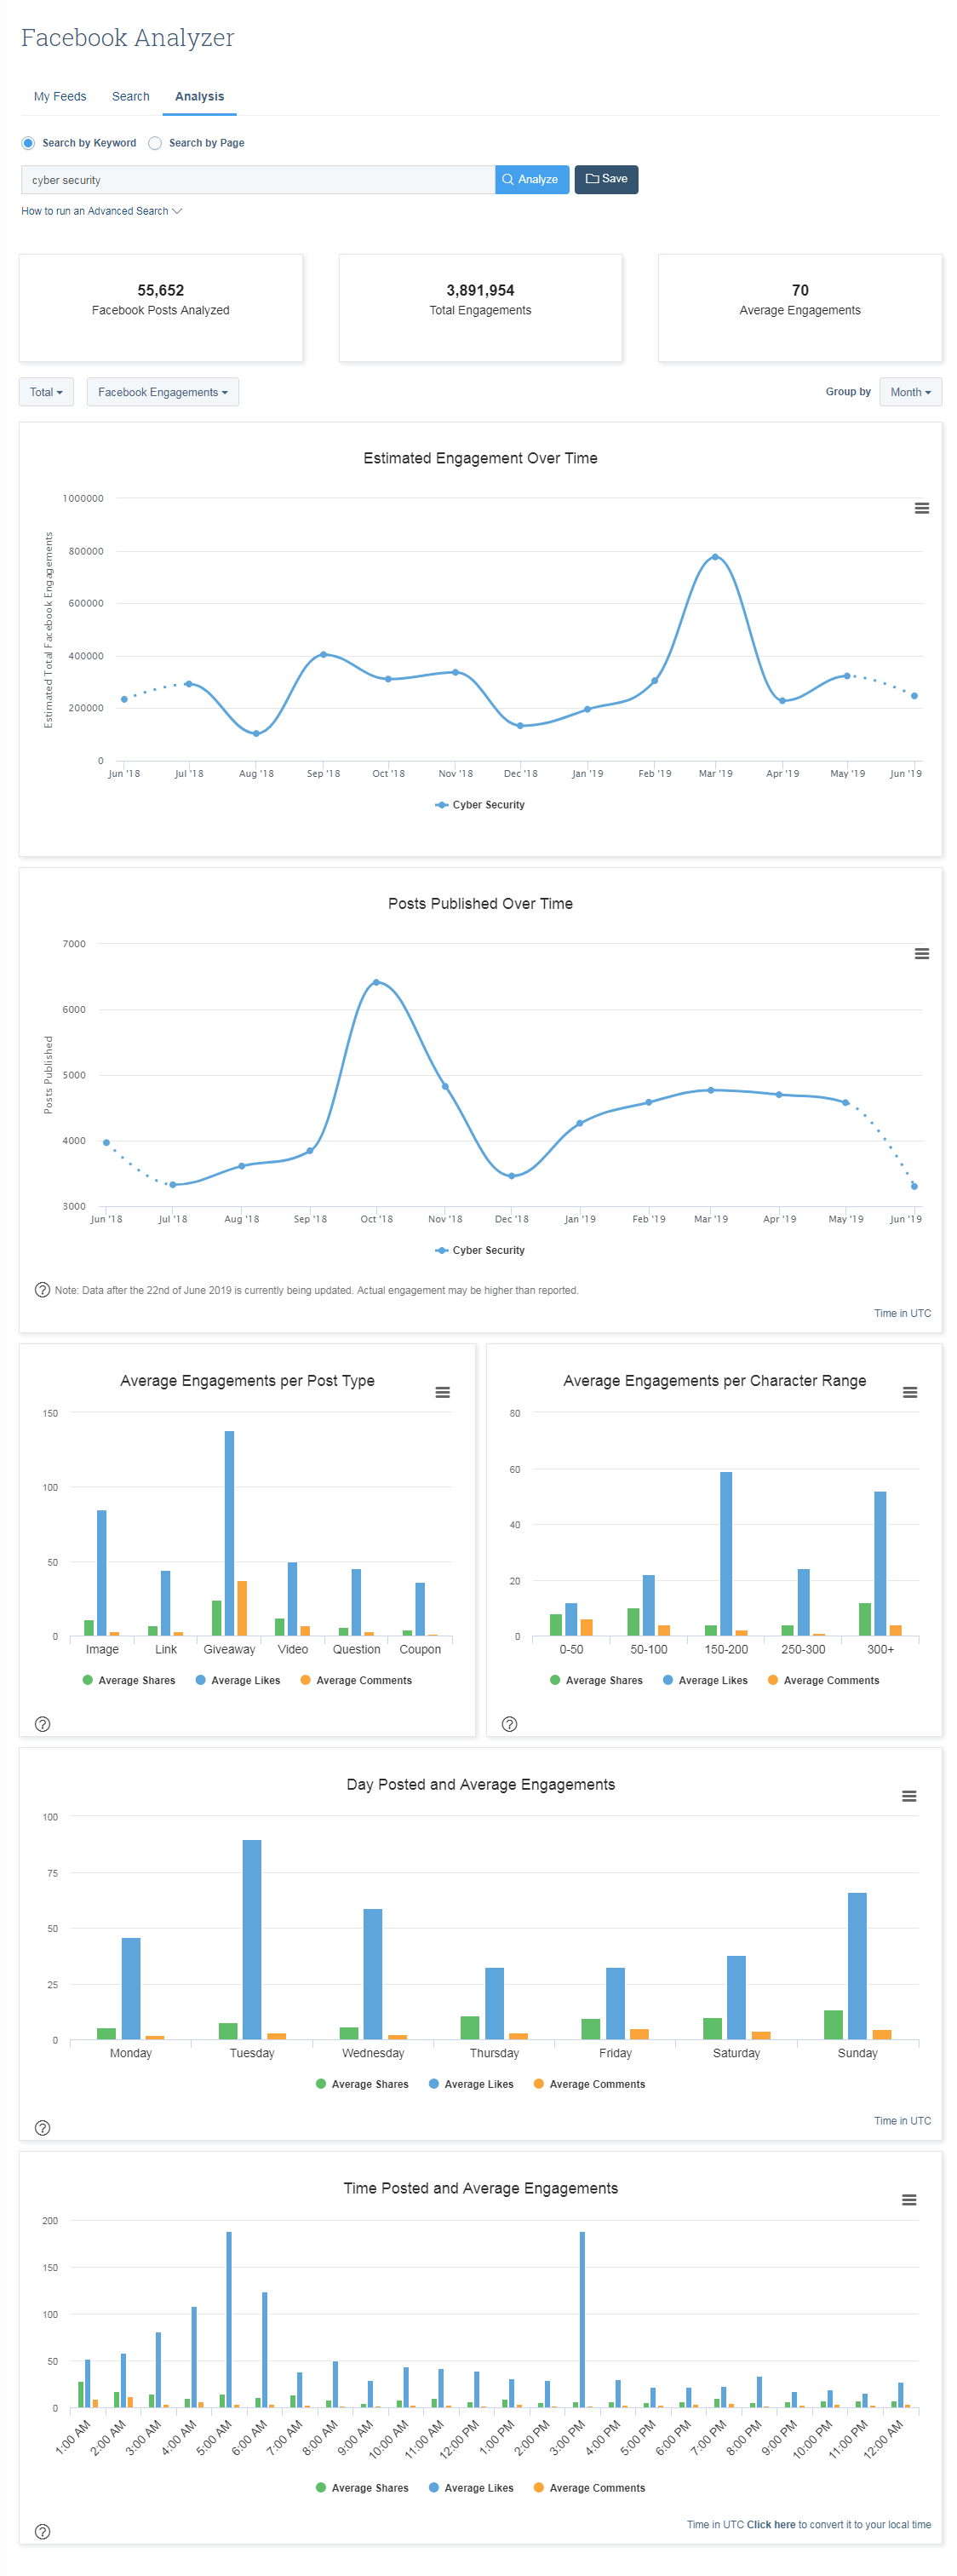 How to Use BuzzSumo's Facebook Analyzer to Find Top Posts